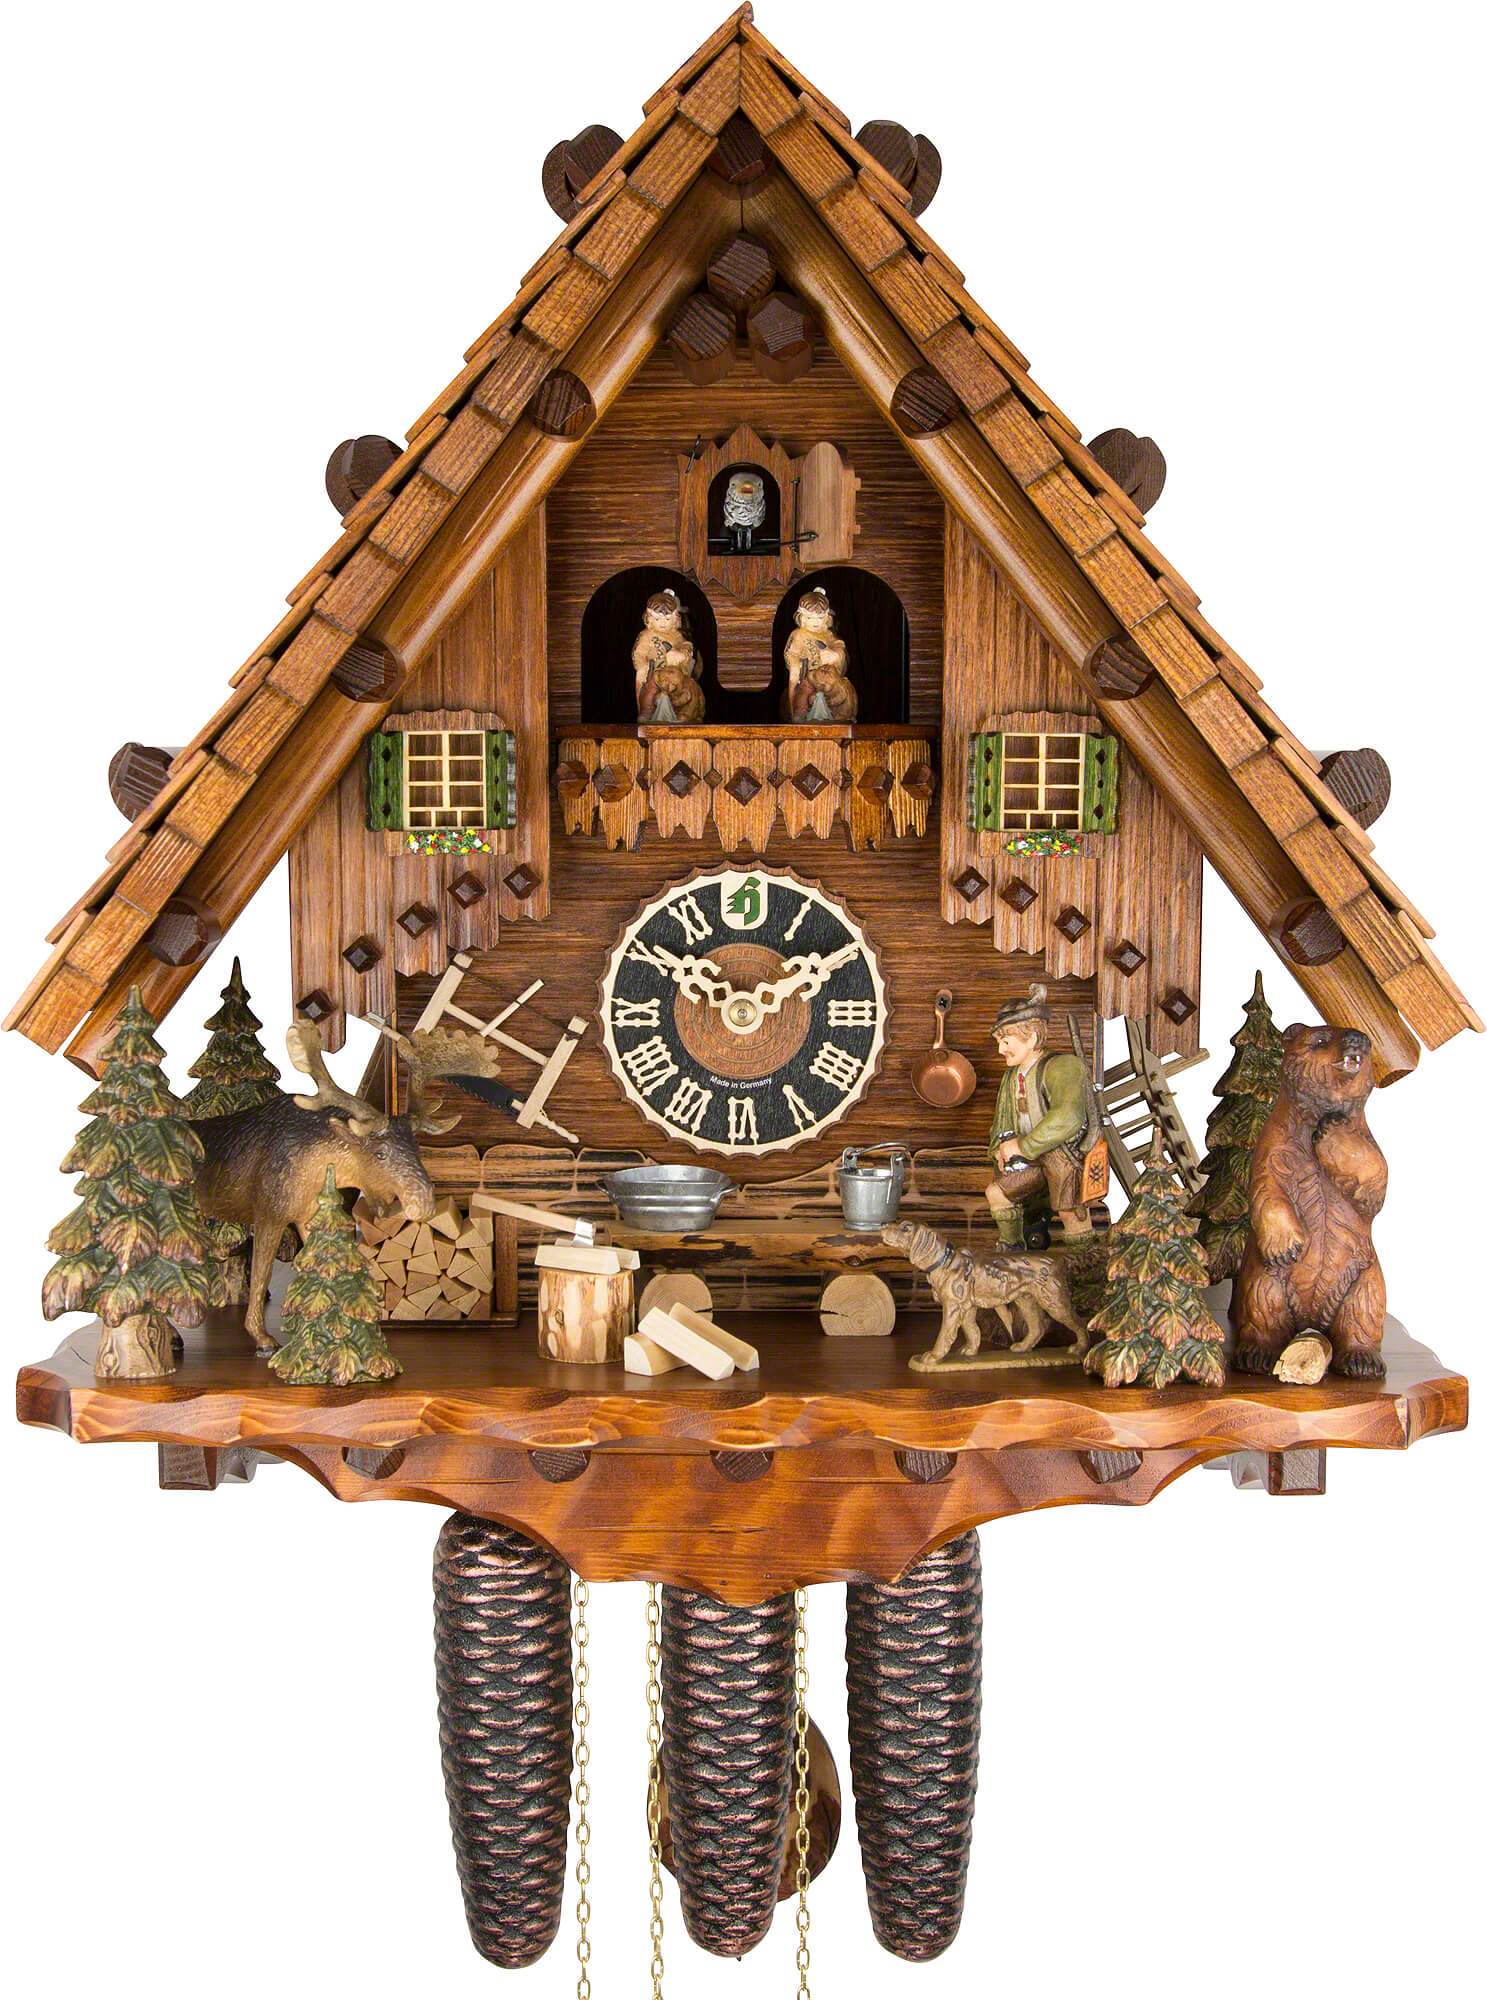 Cuckoo clock 8 day movement chalet style 44cm by h nes 8635t How to make a cuckoo clock